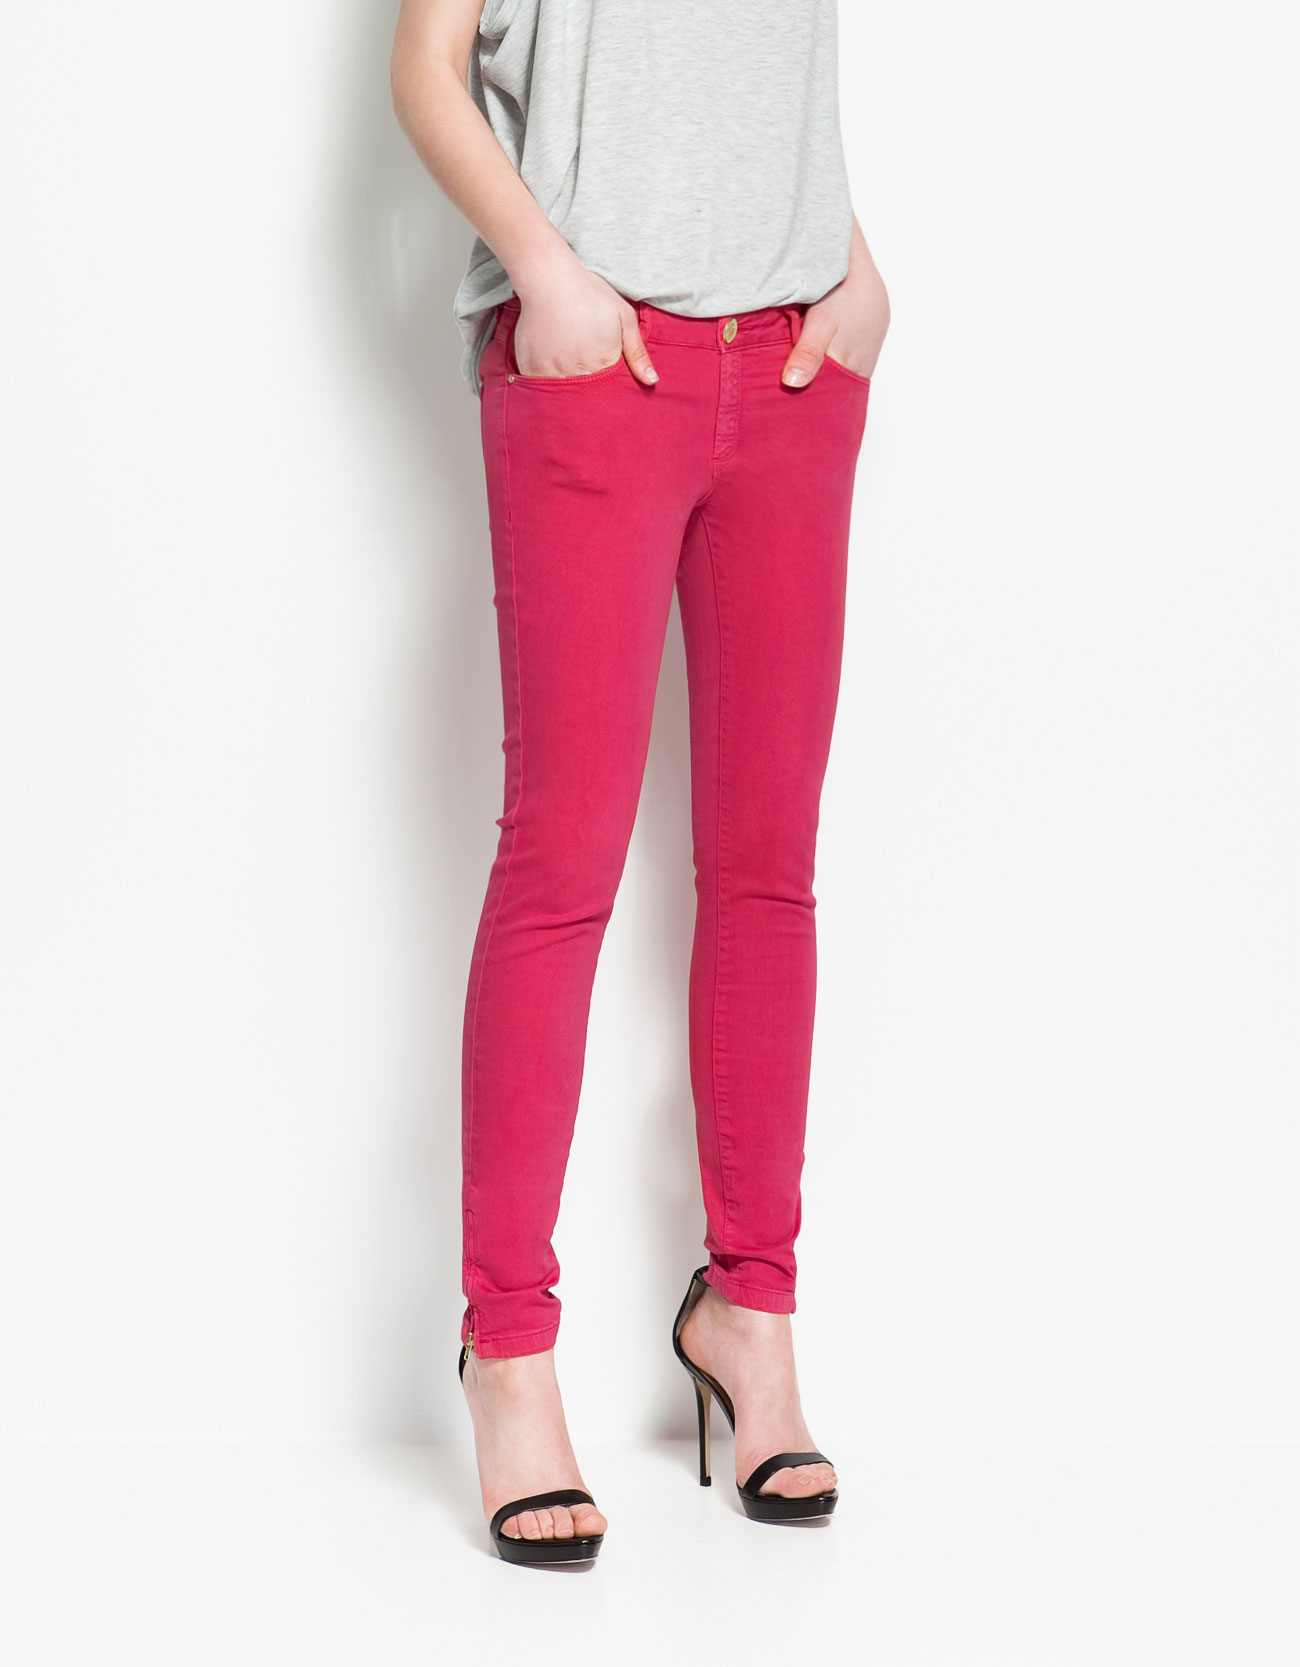 Dyed Trousers with Zips by Zara